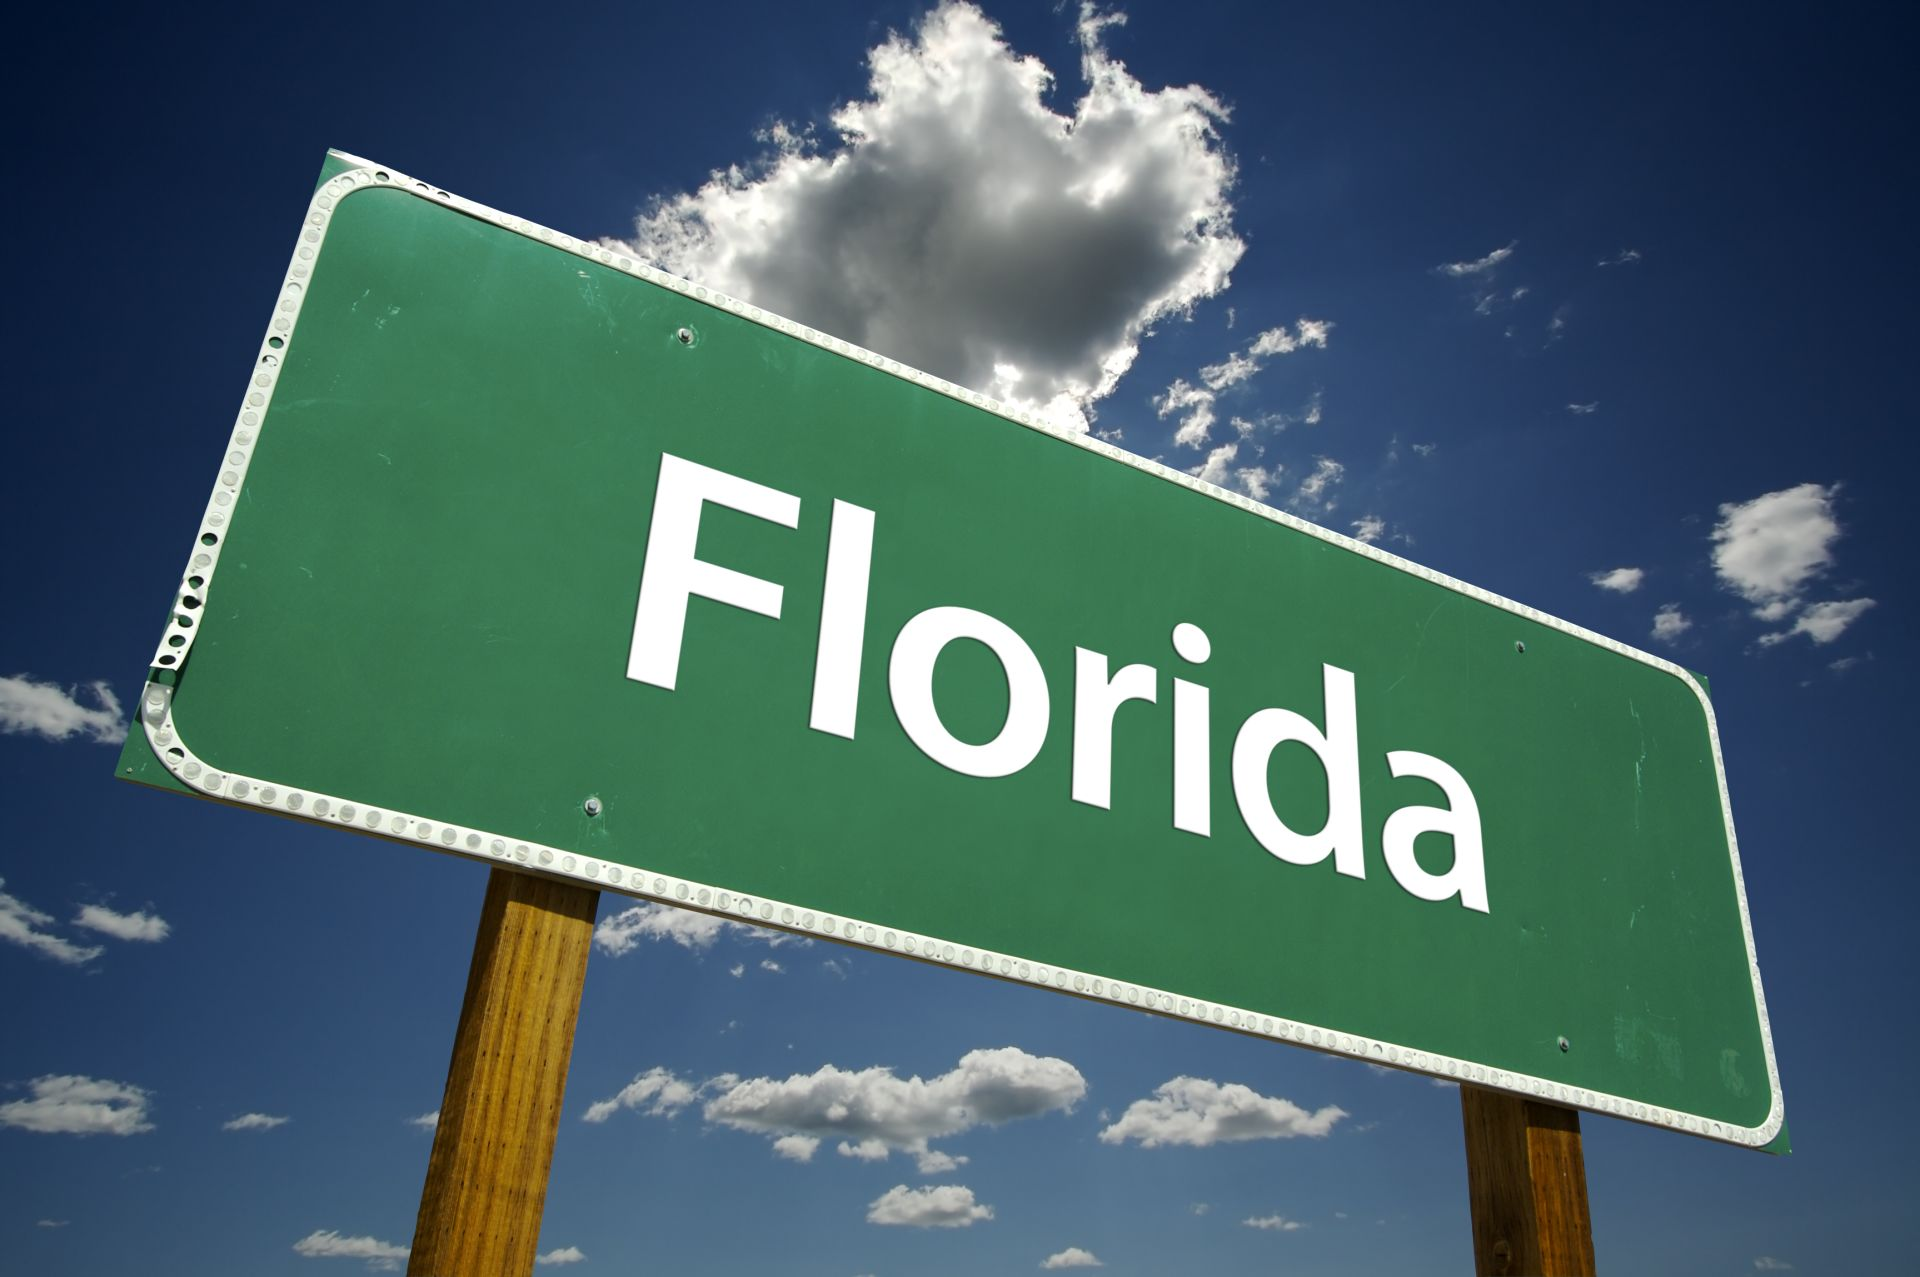 Real Estate News- Florida Real Estate News. The Florida Economy Is Poised For Long Positive Run